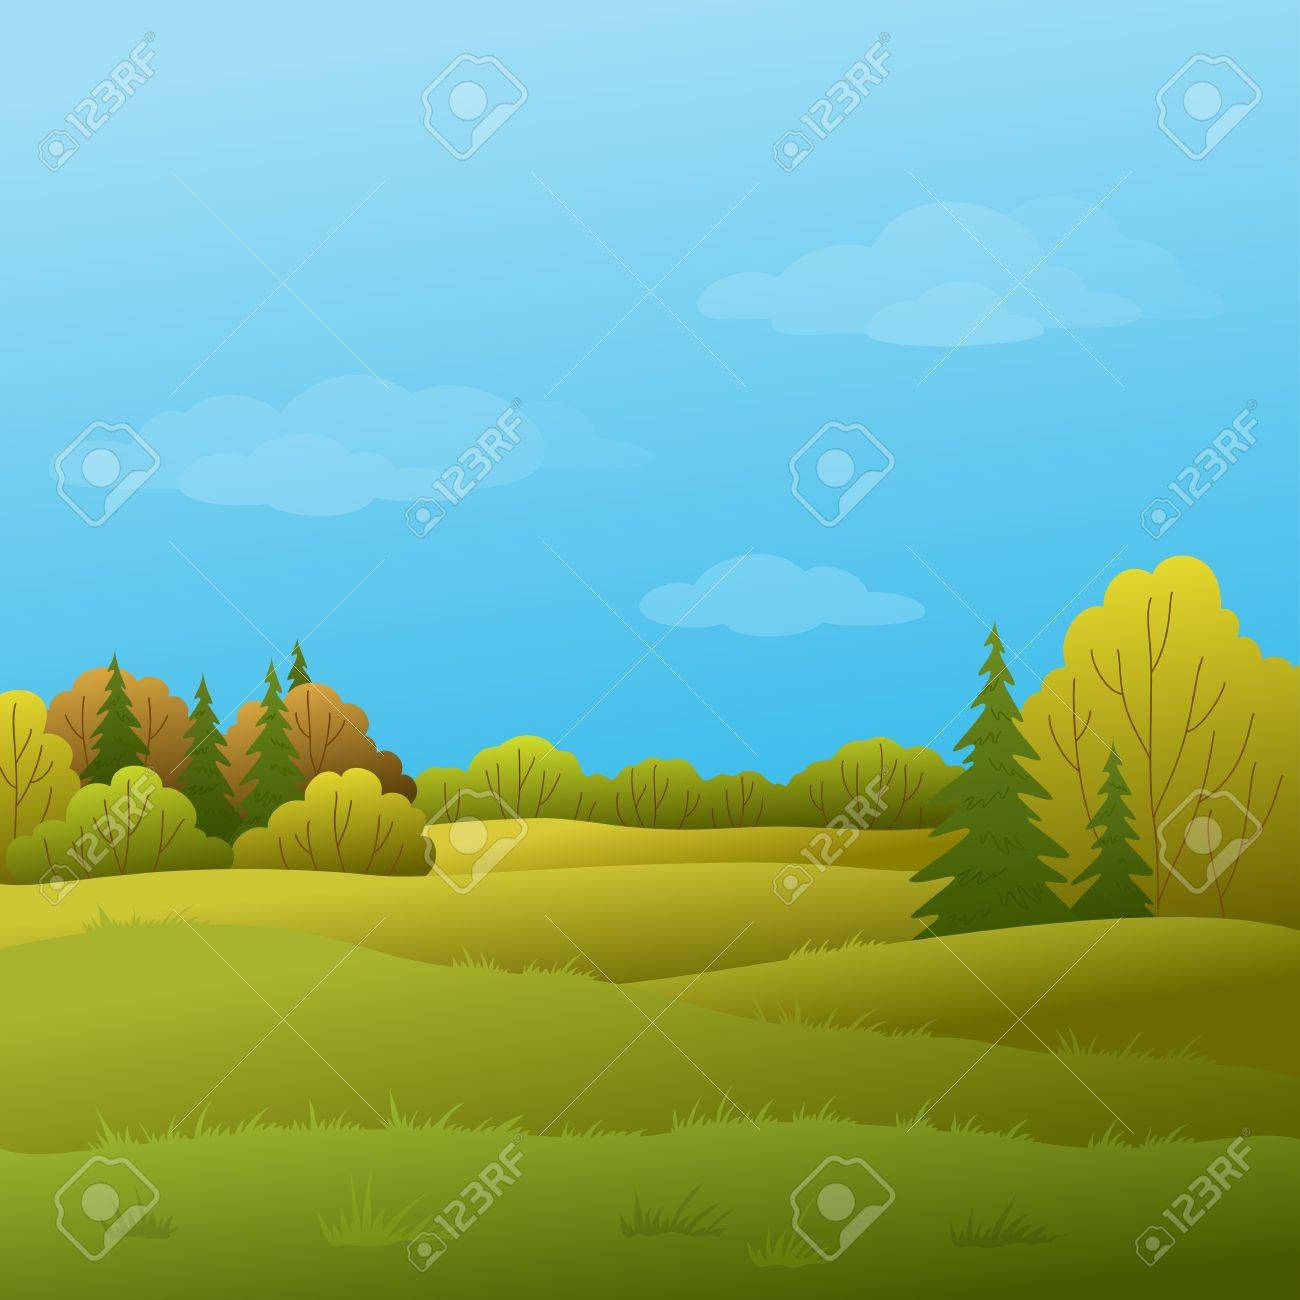 Vector, autumn landscape: forest with various trees and the blue sky with white clouds Stock Vector - 9773809